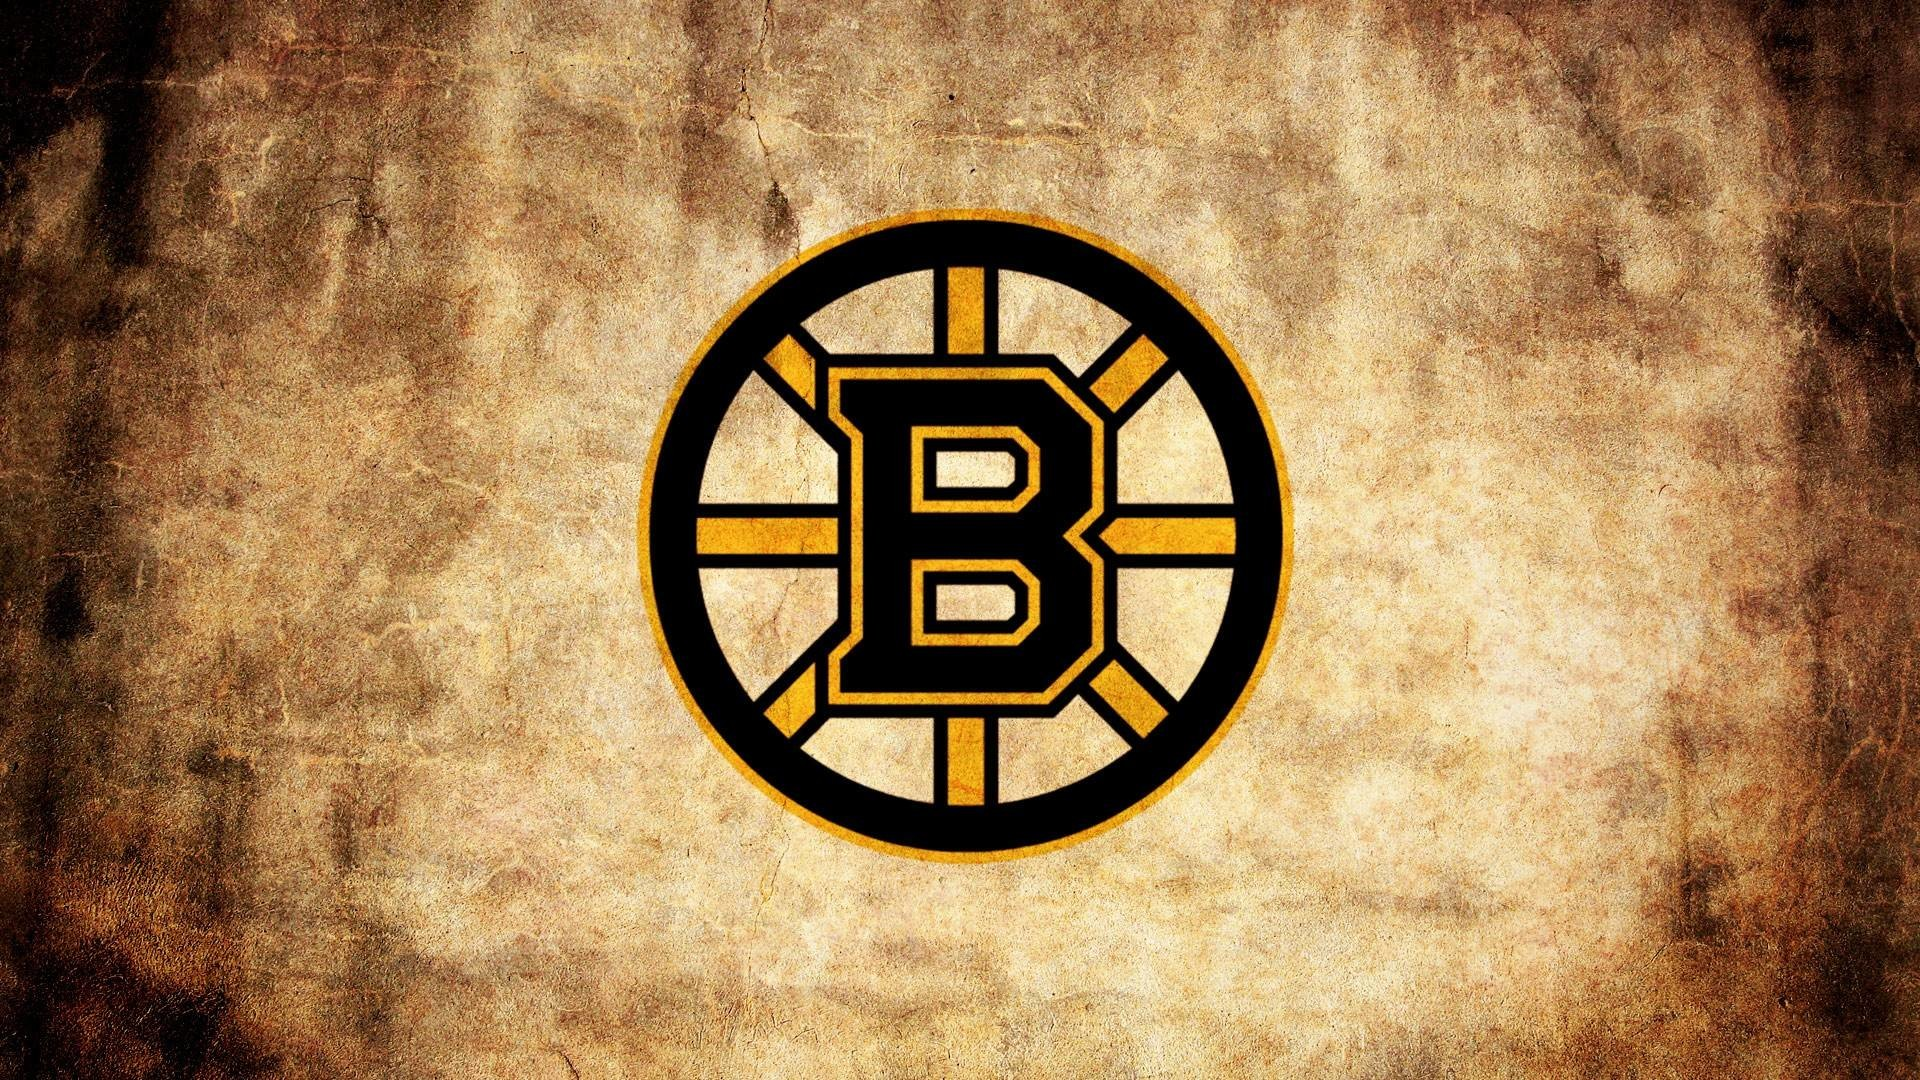 1920x1080 Boston Sports Iphone Wallpaper Wallpaper | HDGalaxyWallpaper